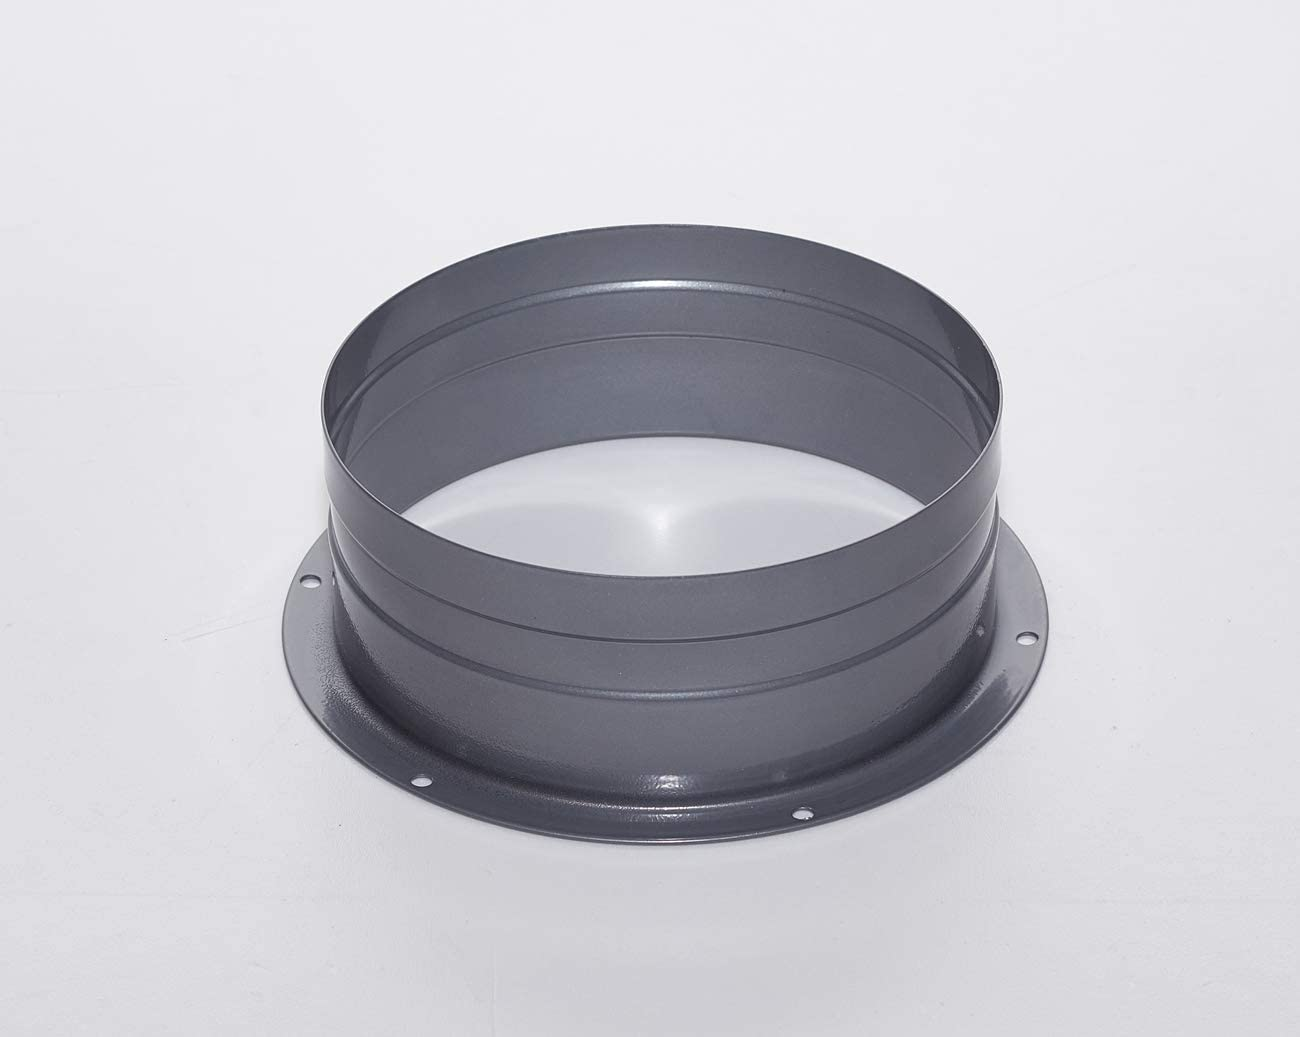 Duct Connector Flange Metal Straight Pipe Flange for Heating Cooling Ventilation System 4/6 Inch (4 inch)